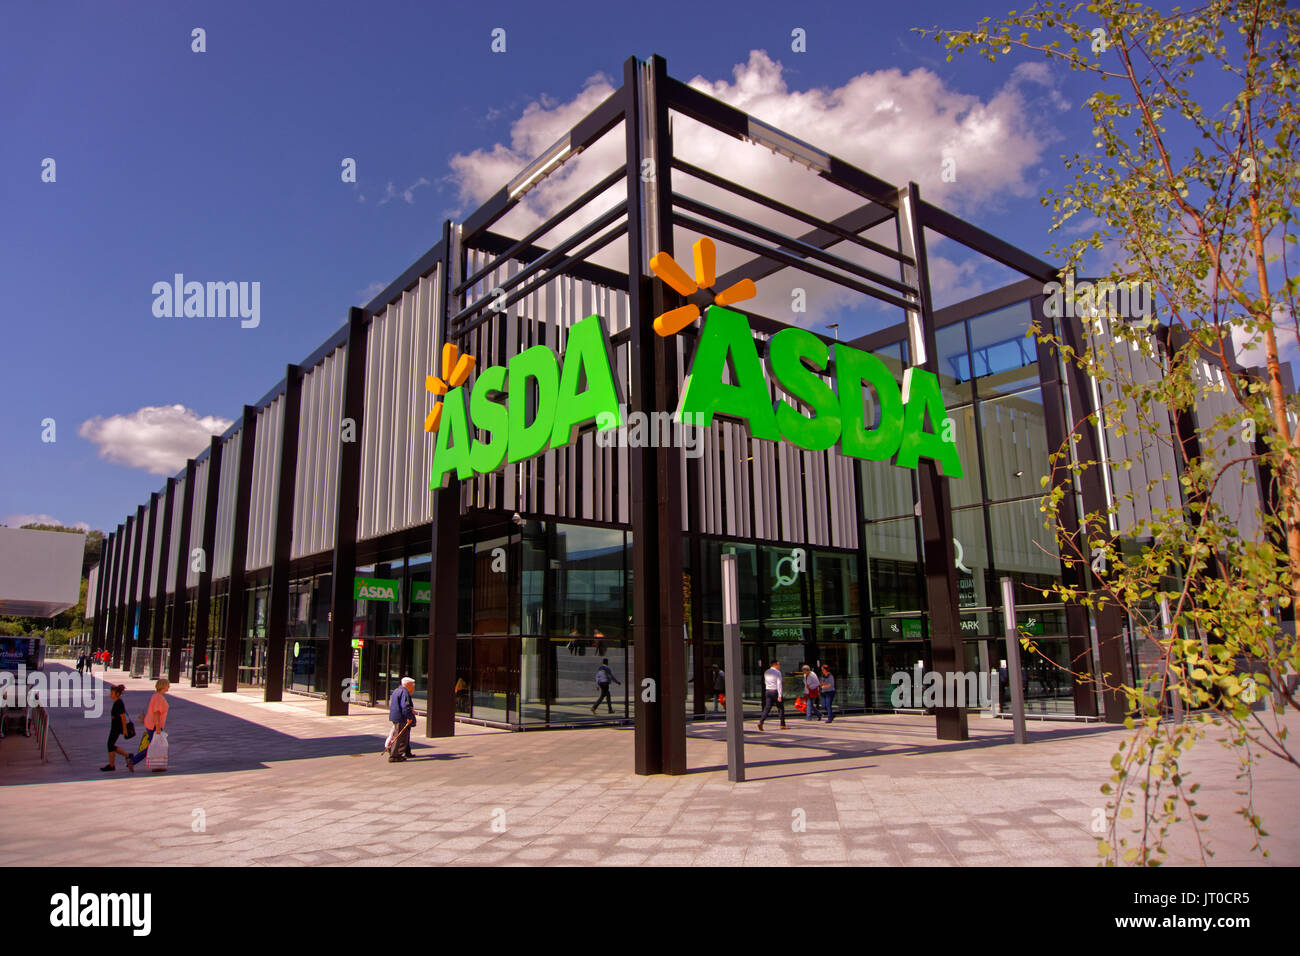 Asda store at the new Barons Quay development at Northwich, Cheshire, England, UK. - Stock Image